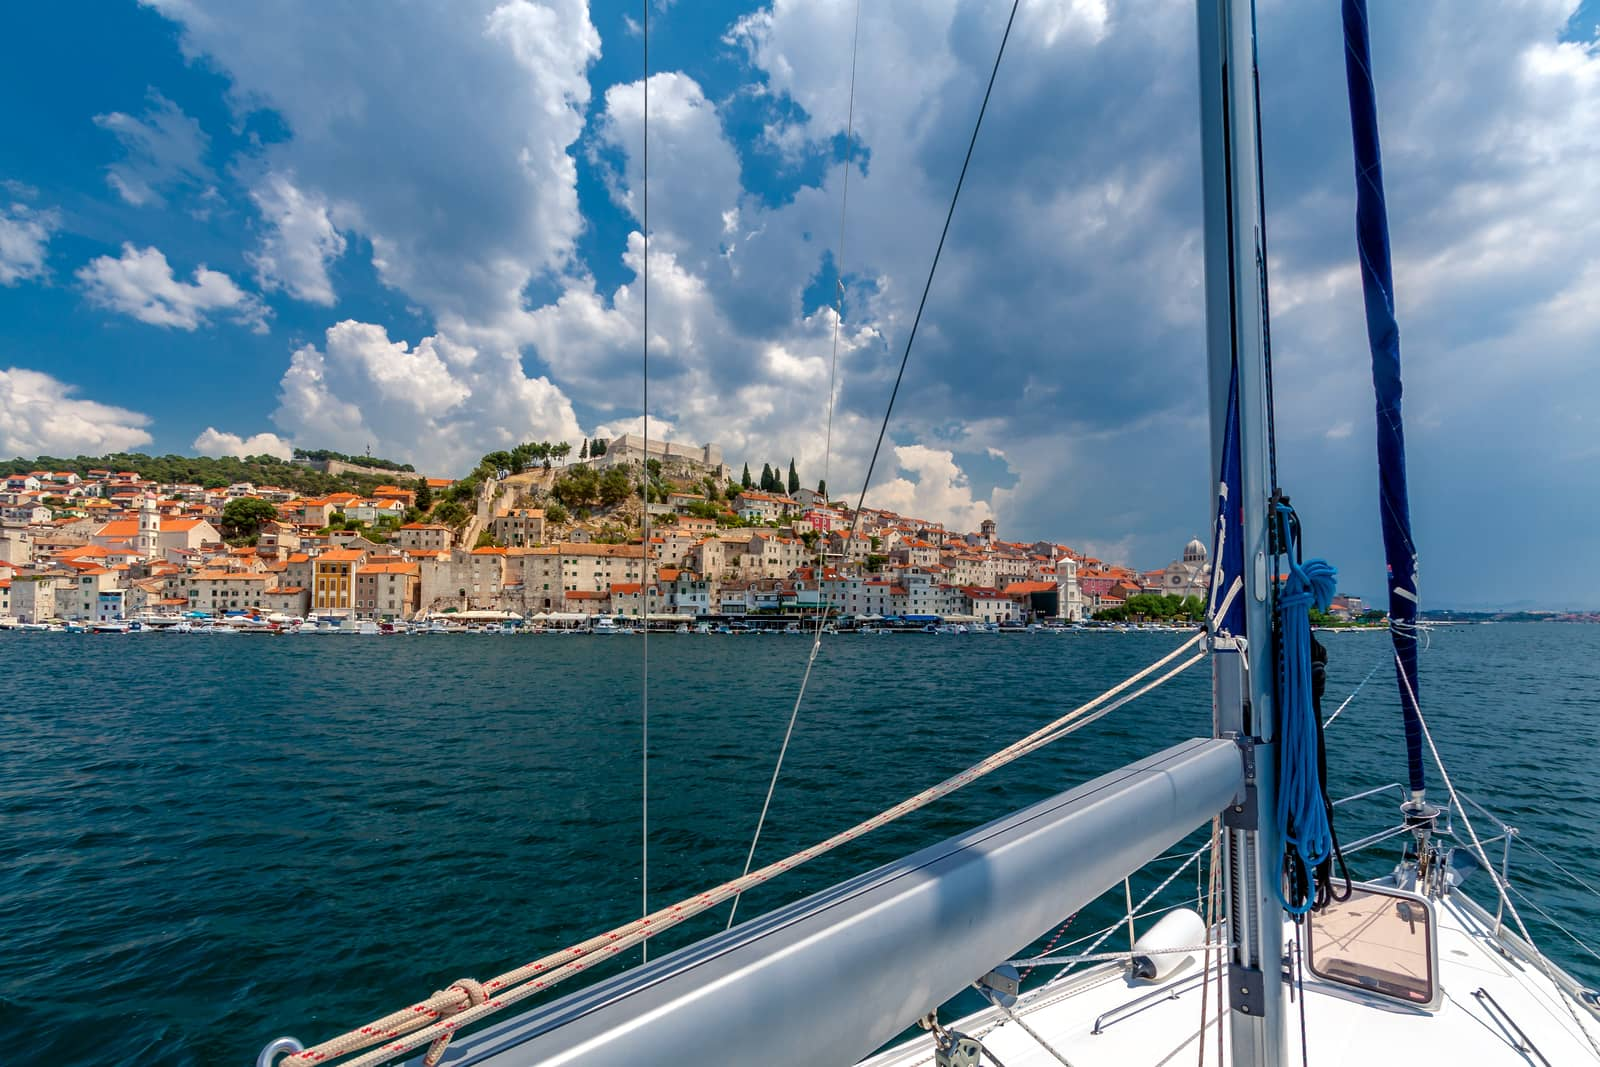 Karte Split Dubrovnik.Croatia Sailing Holidays And Yacht Charters